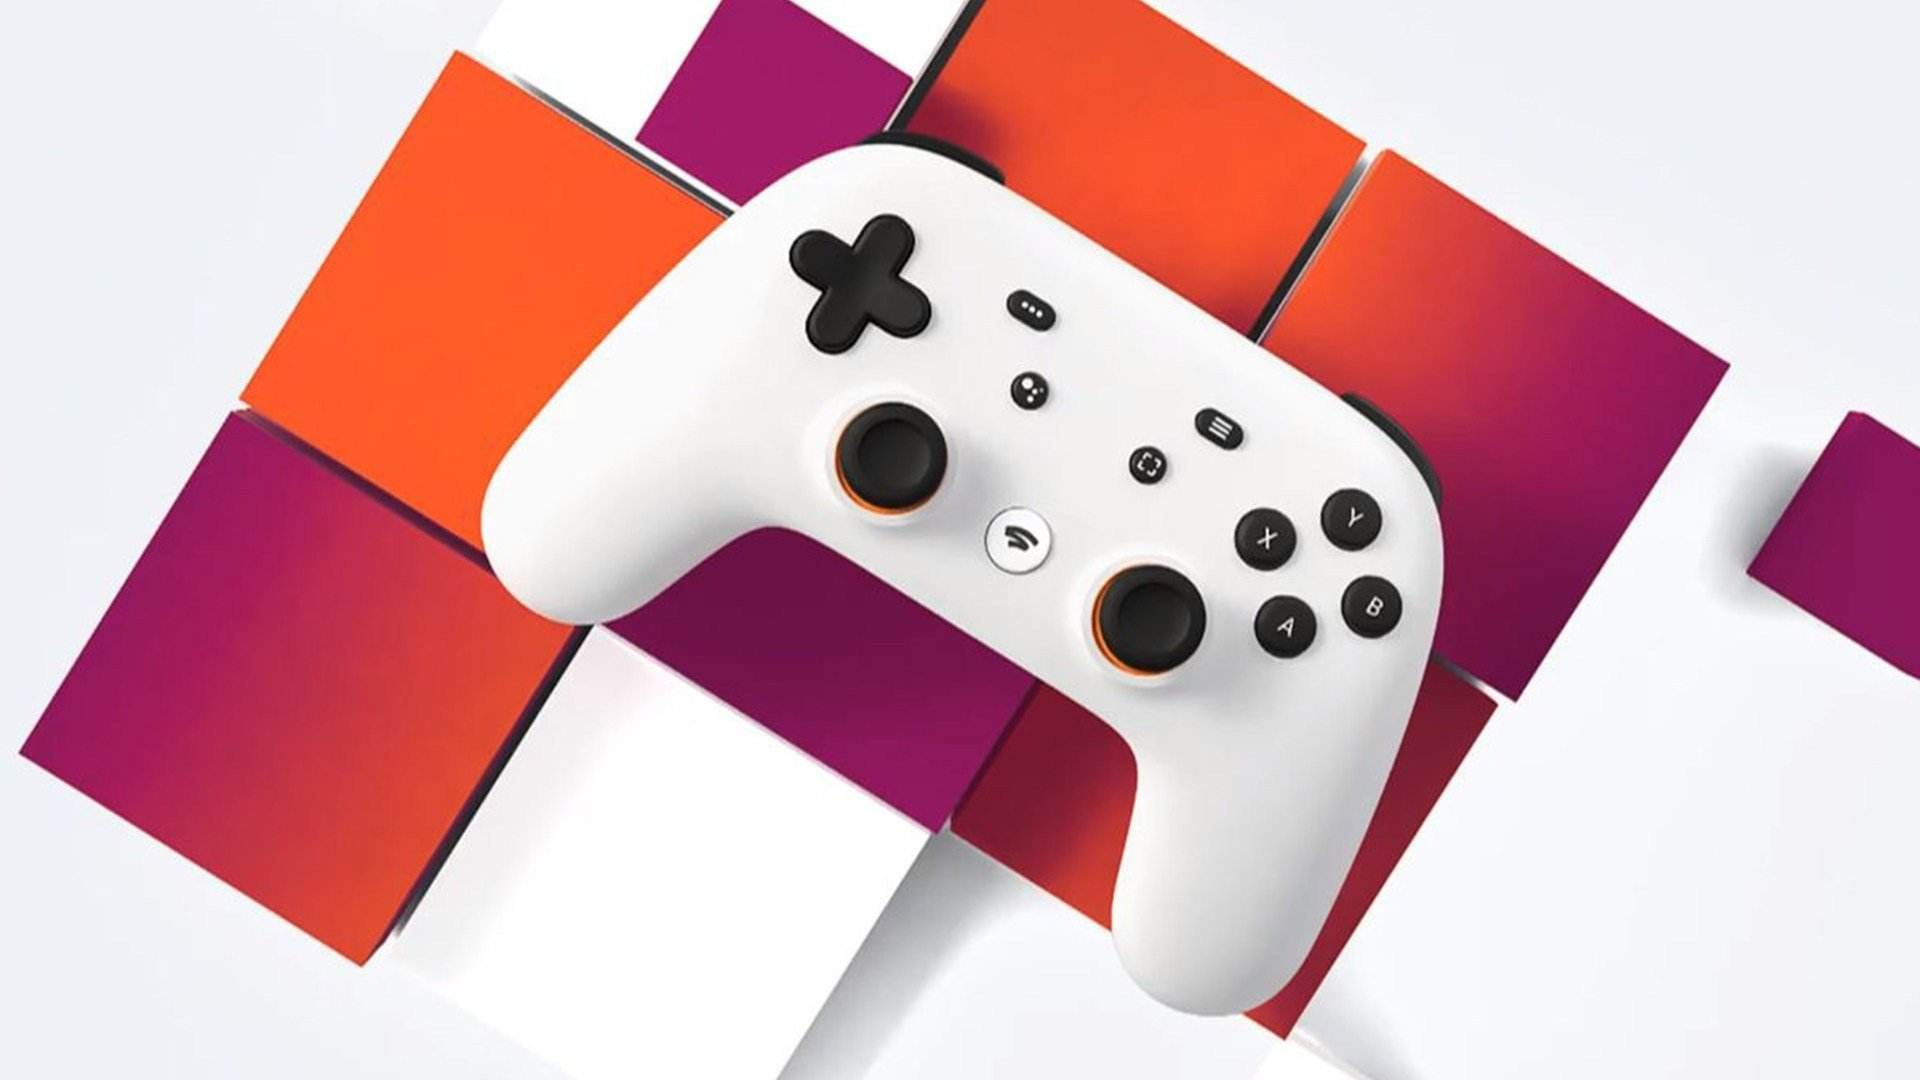 Microsoft's Phil Spencer on Google Stadia - Xbox Will Go Big at E3